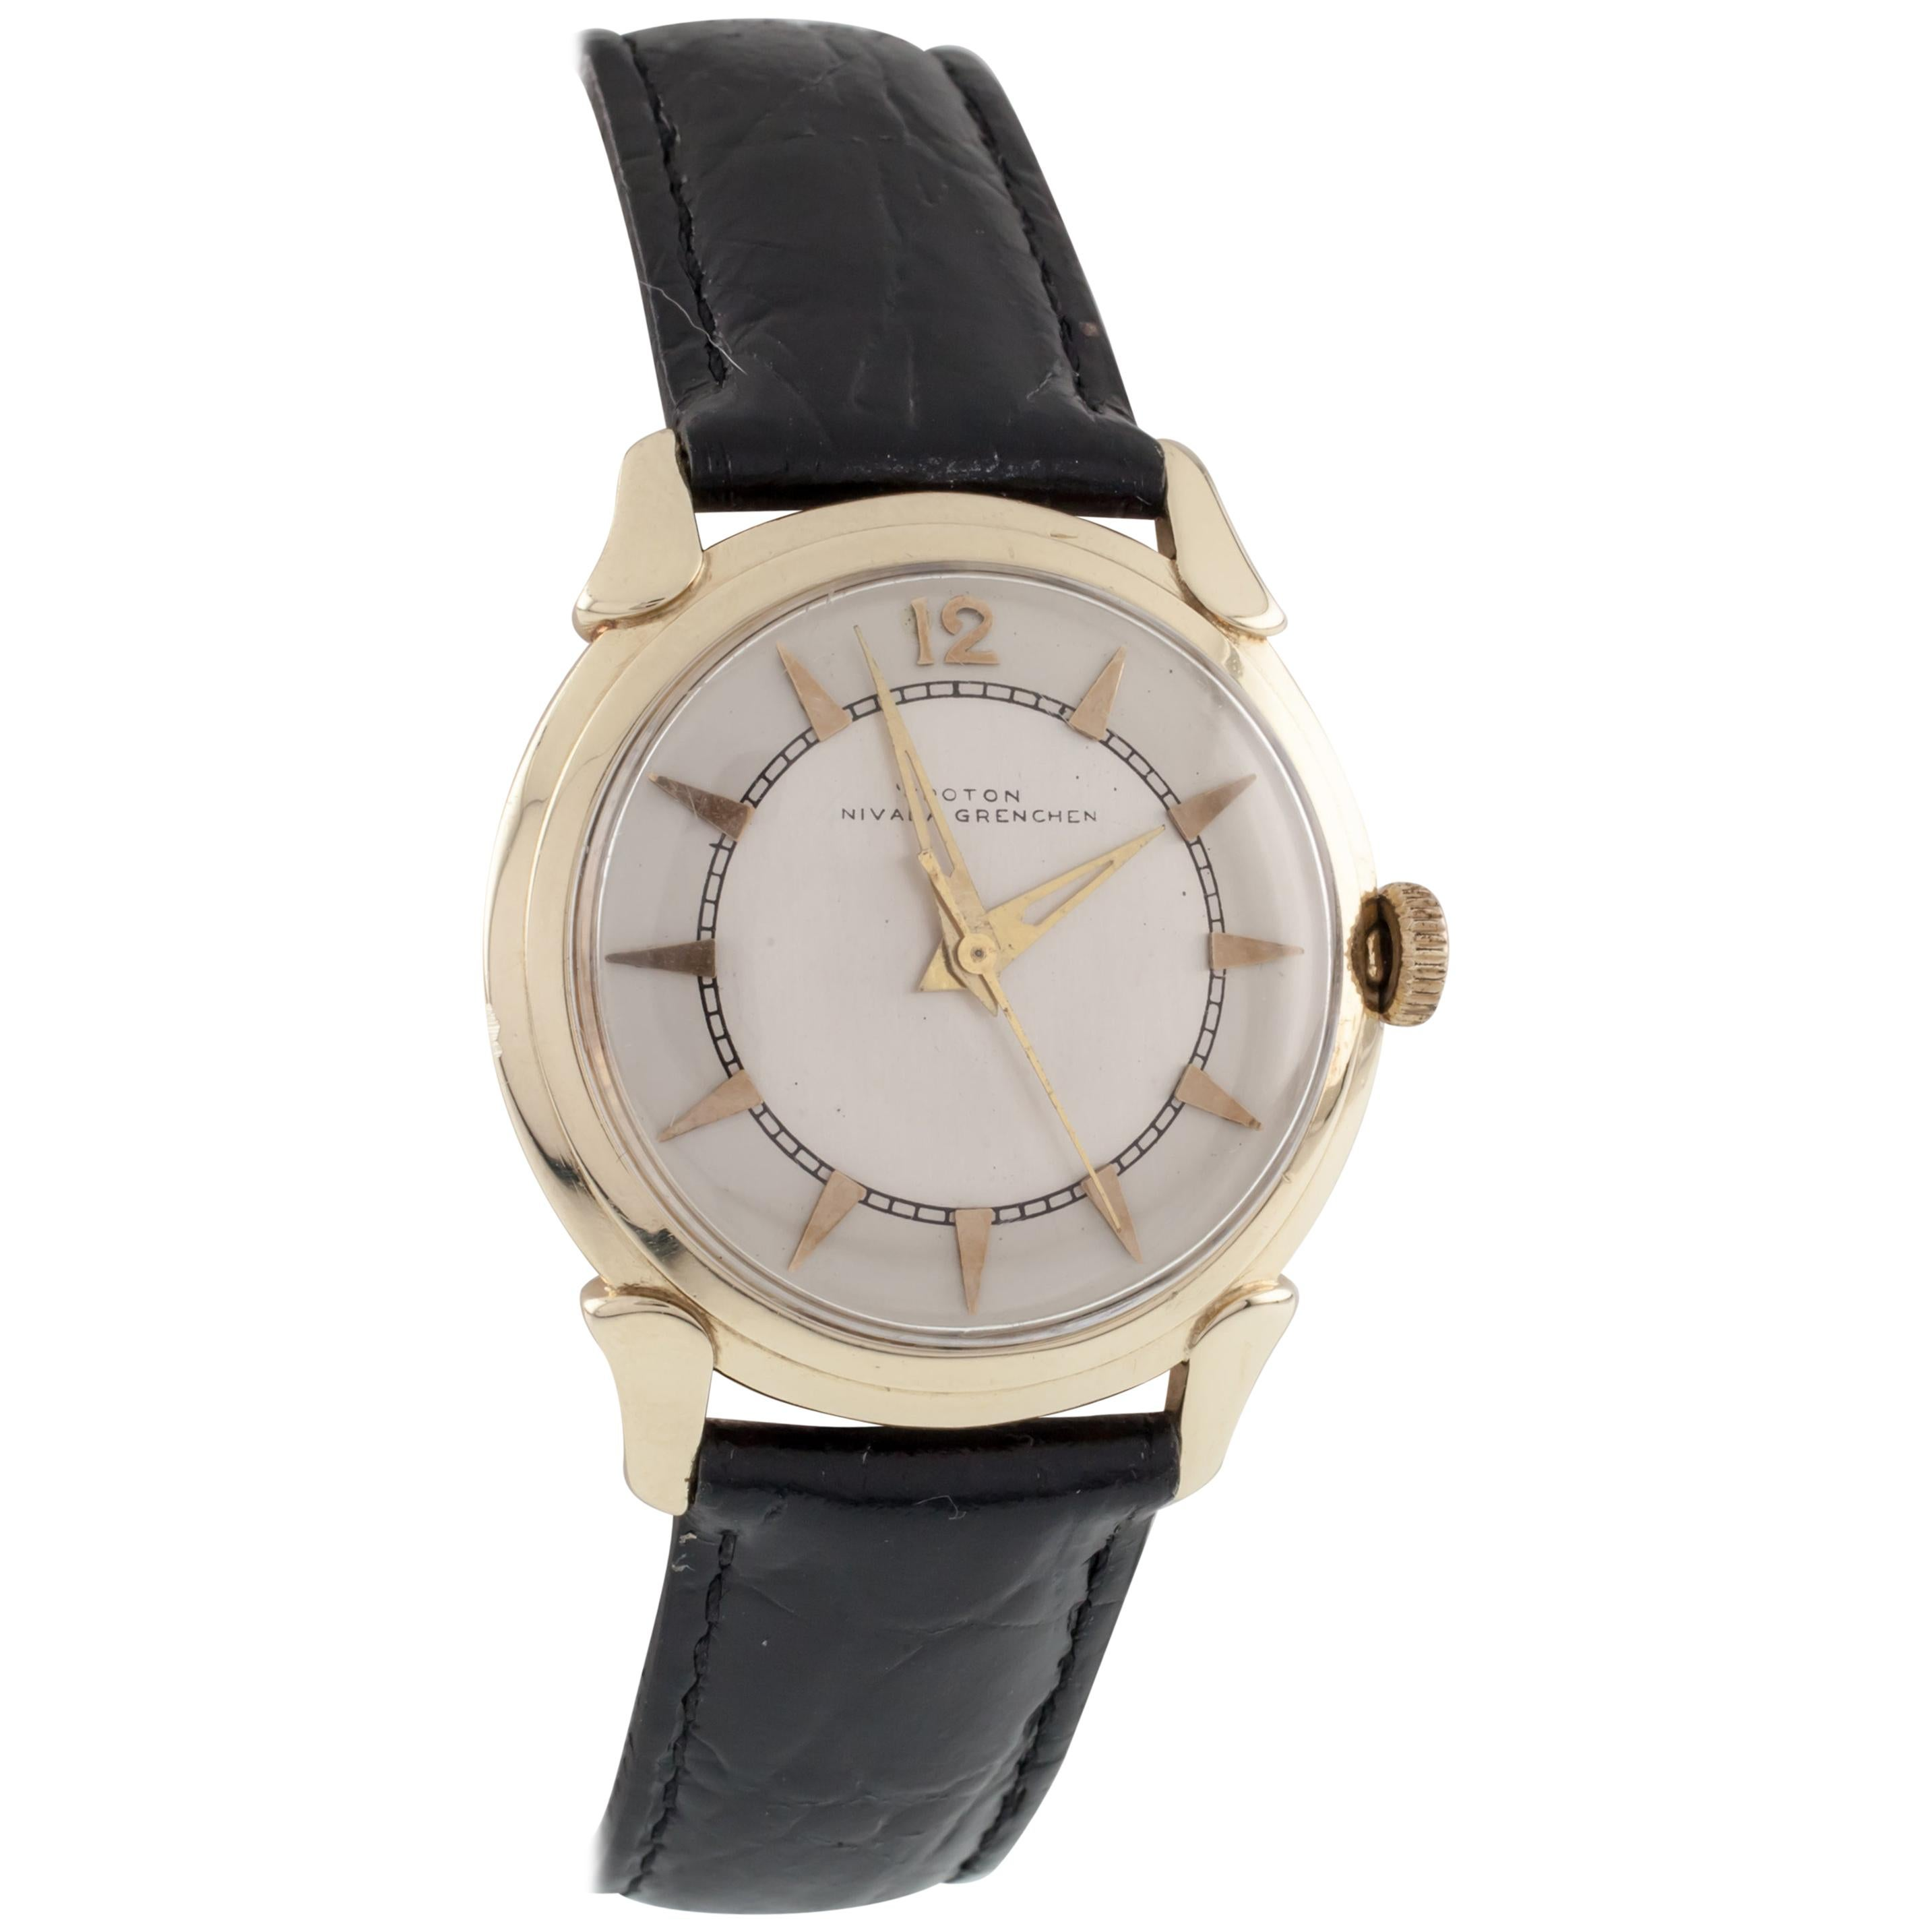 Croton Yellow Gold Nivada Grenchen Automatic Men's Watch with Leather Band